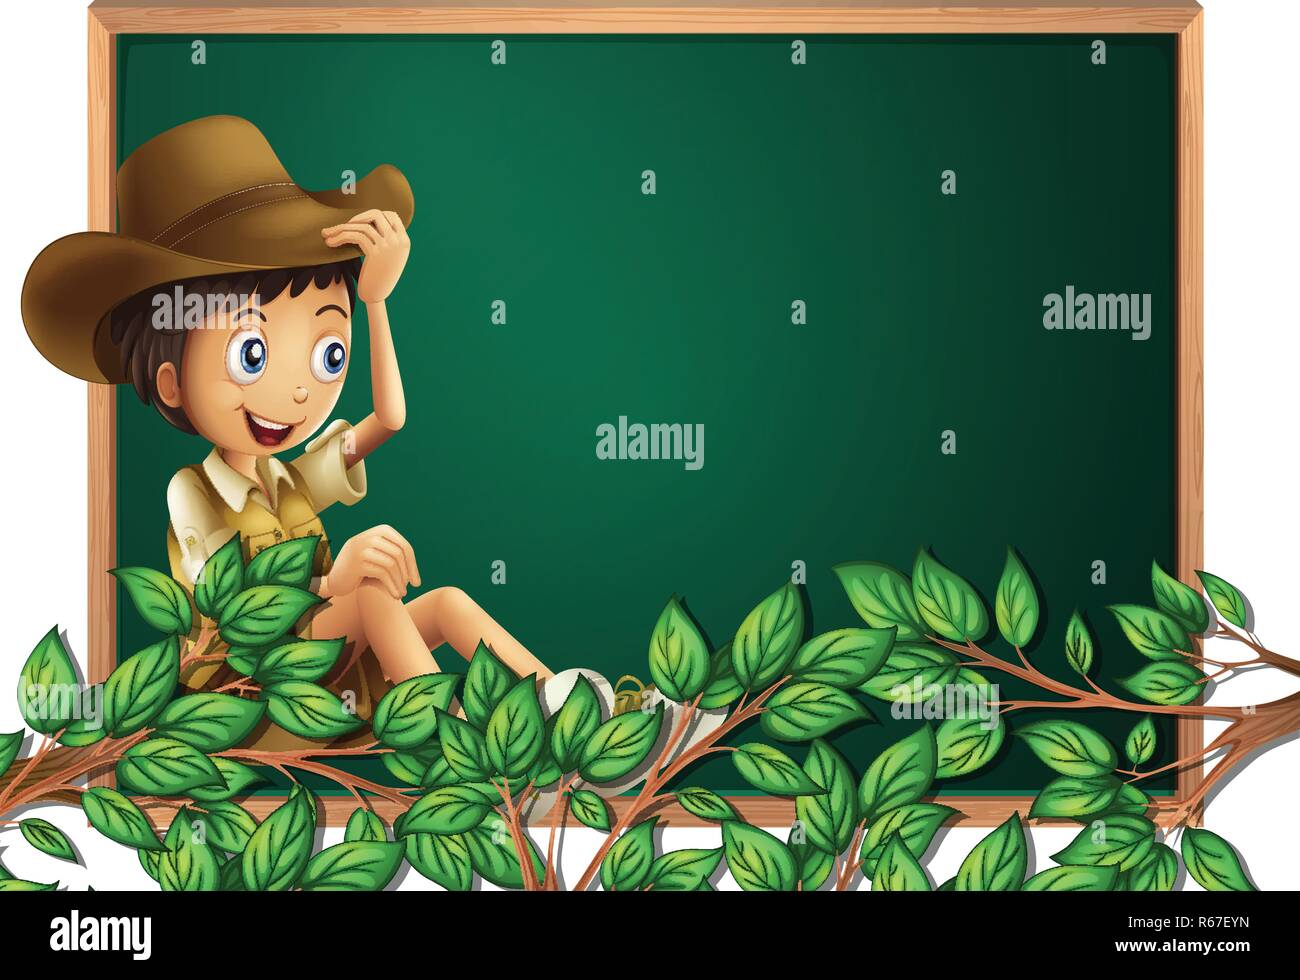 Boy scout on blackboard banner illustration - Stock Vector